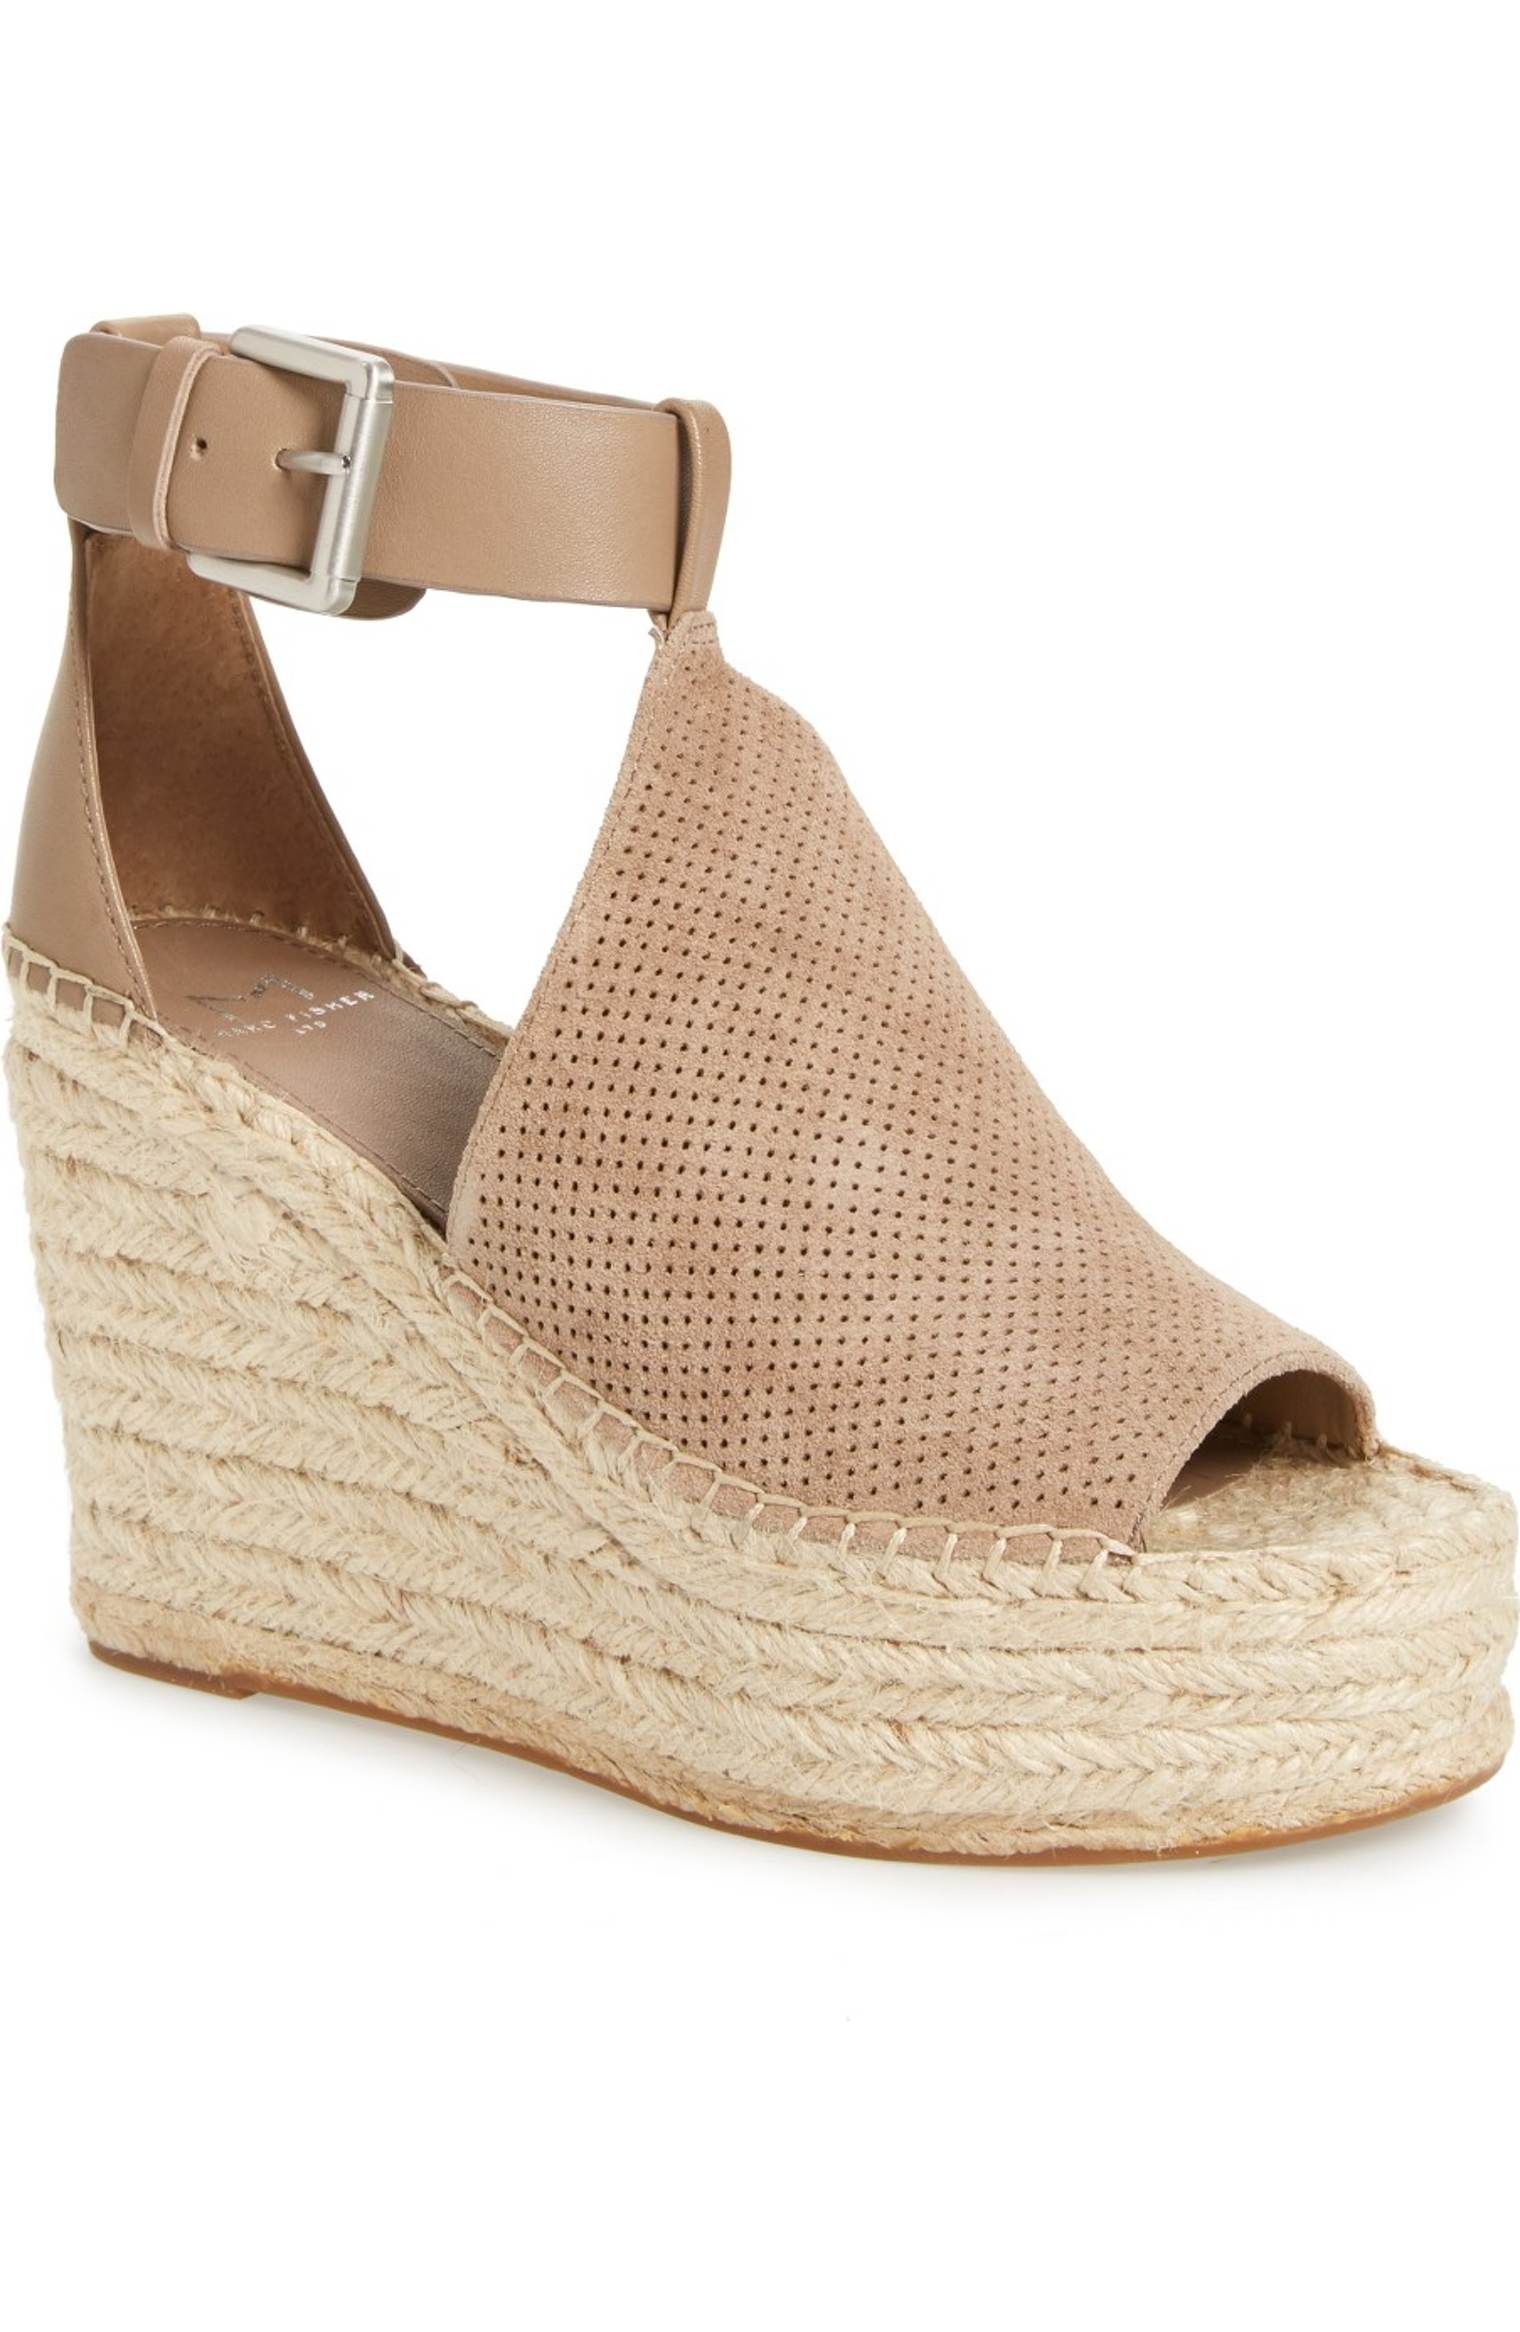 c4305585992 Main Image - Marc Fisher LTD Annie Perforated Espadrille Platform ...